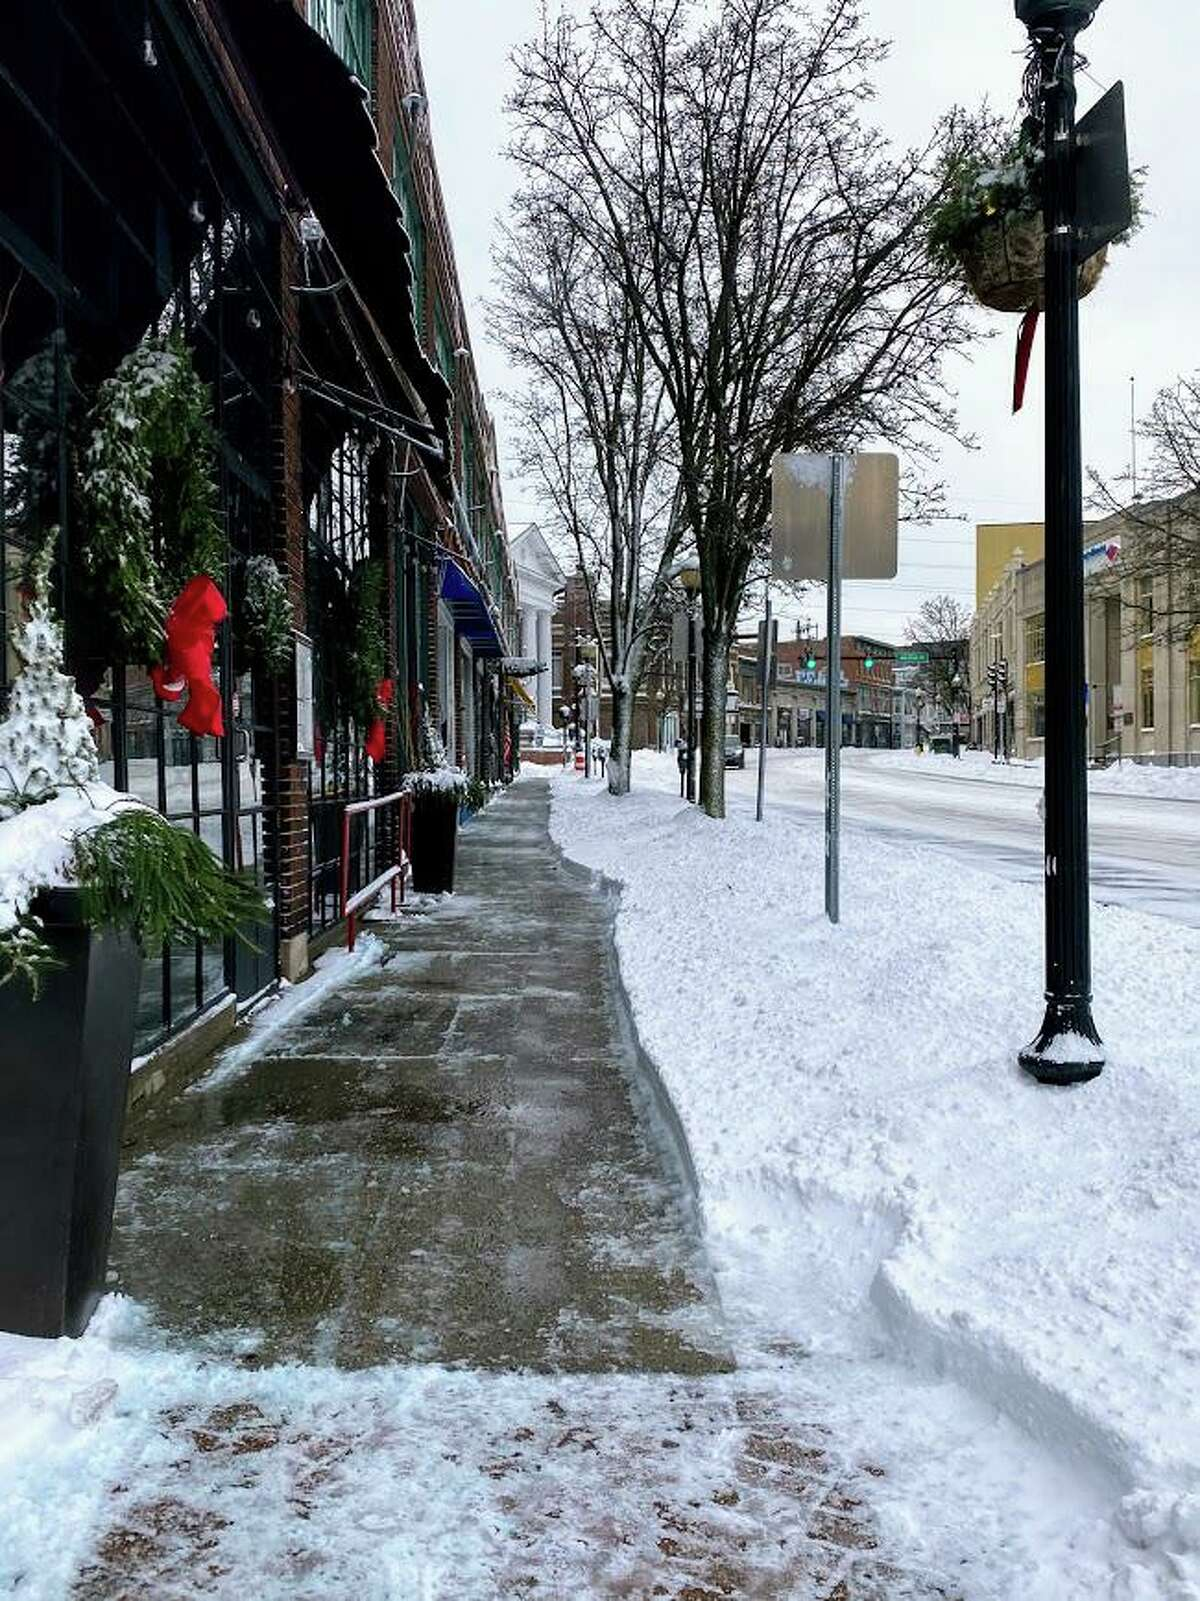 Snow lined North Main Street in Norwalk, Conn. on Dec. 17, 2020 after the area was hit with a storm that brought over 5 inches of snow.